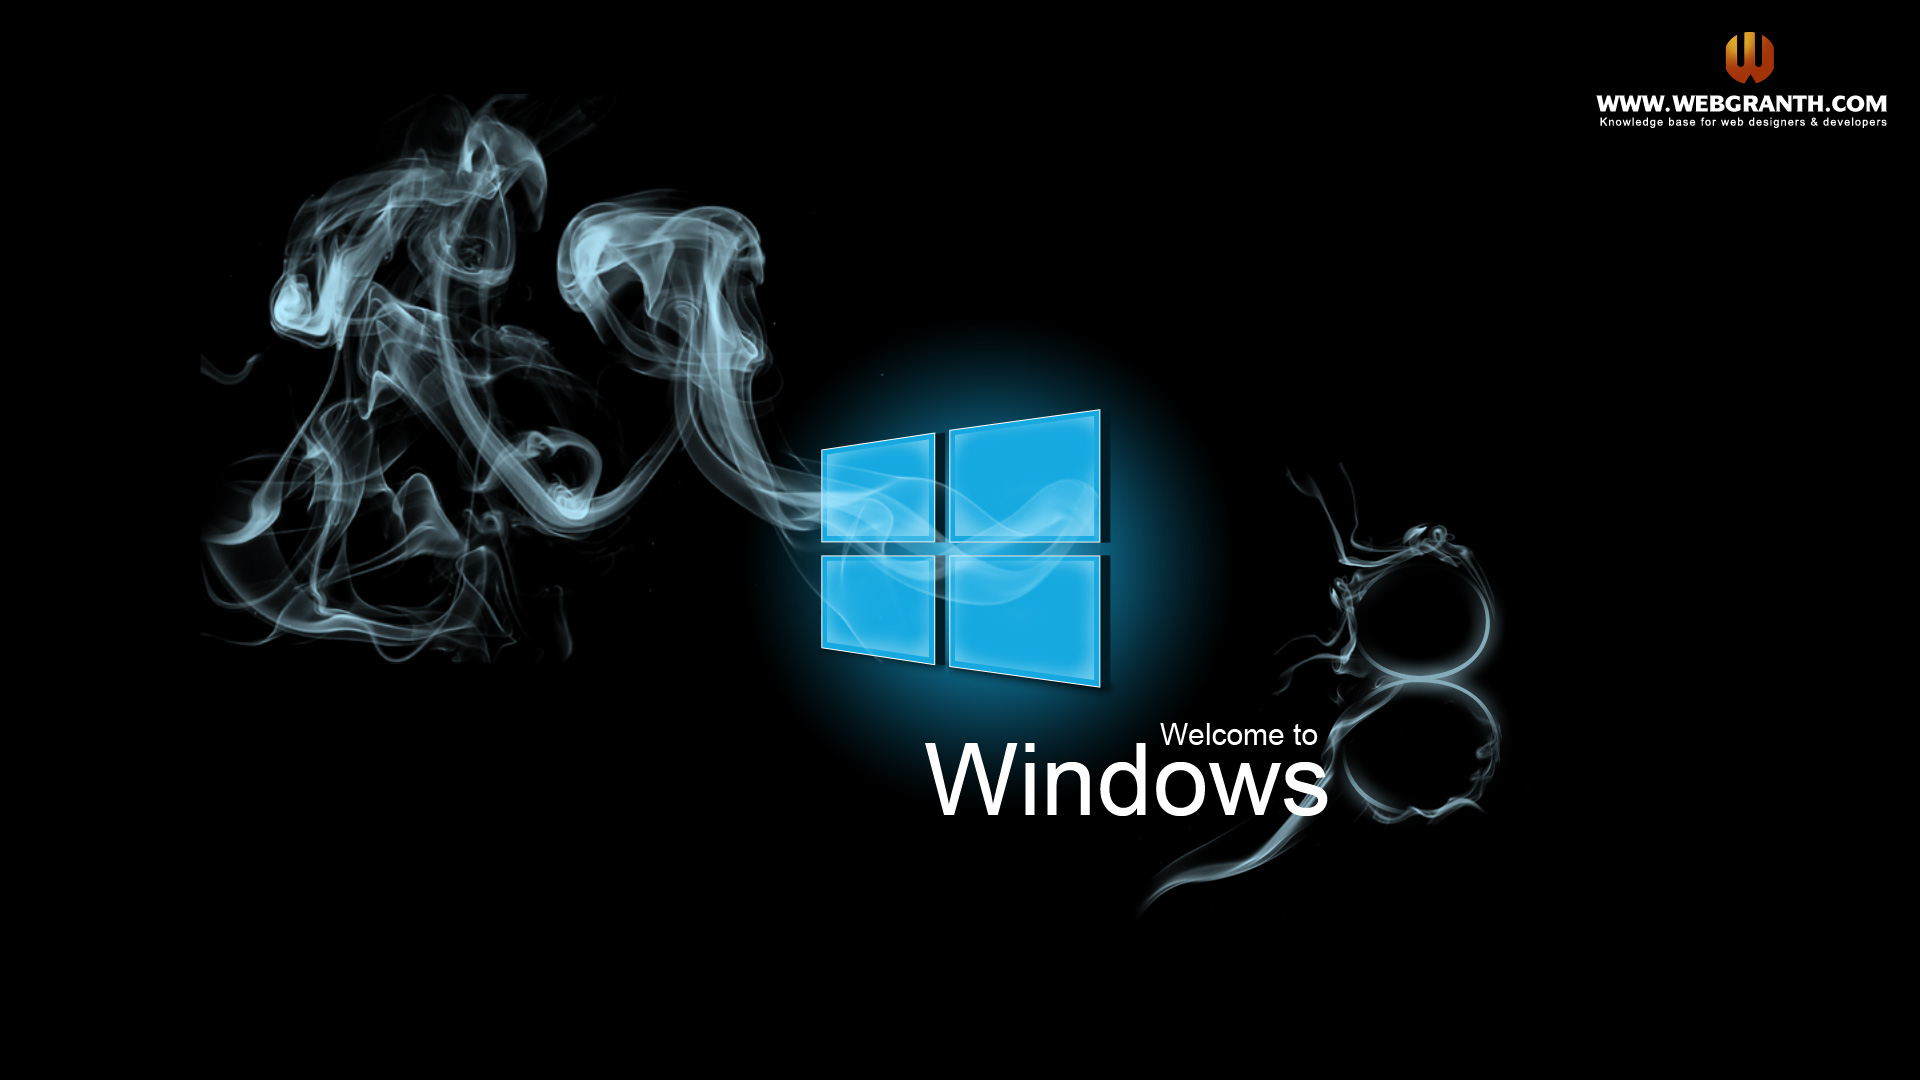 Windows  PC Backgrounds HBC Other Wallpaper: d Desktop Interface Wallpapers Android with High 1920x1080